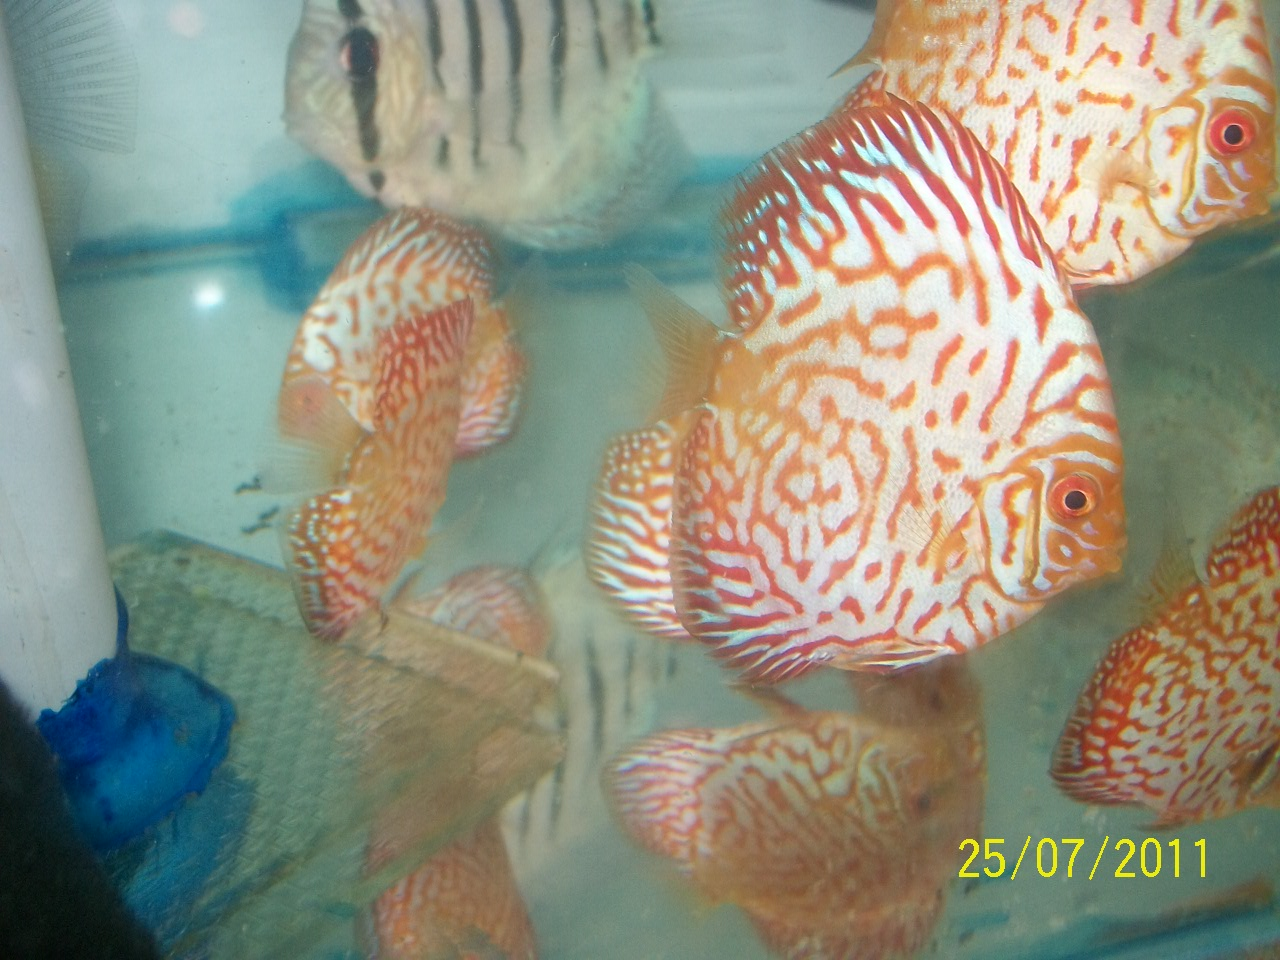 Buy discus fish online discus fish for sale in mum for Discus fish for sale near me